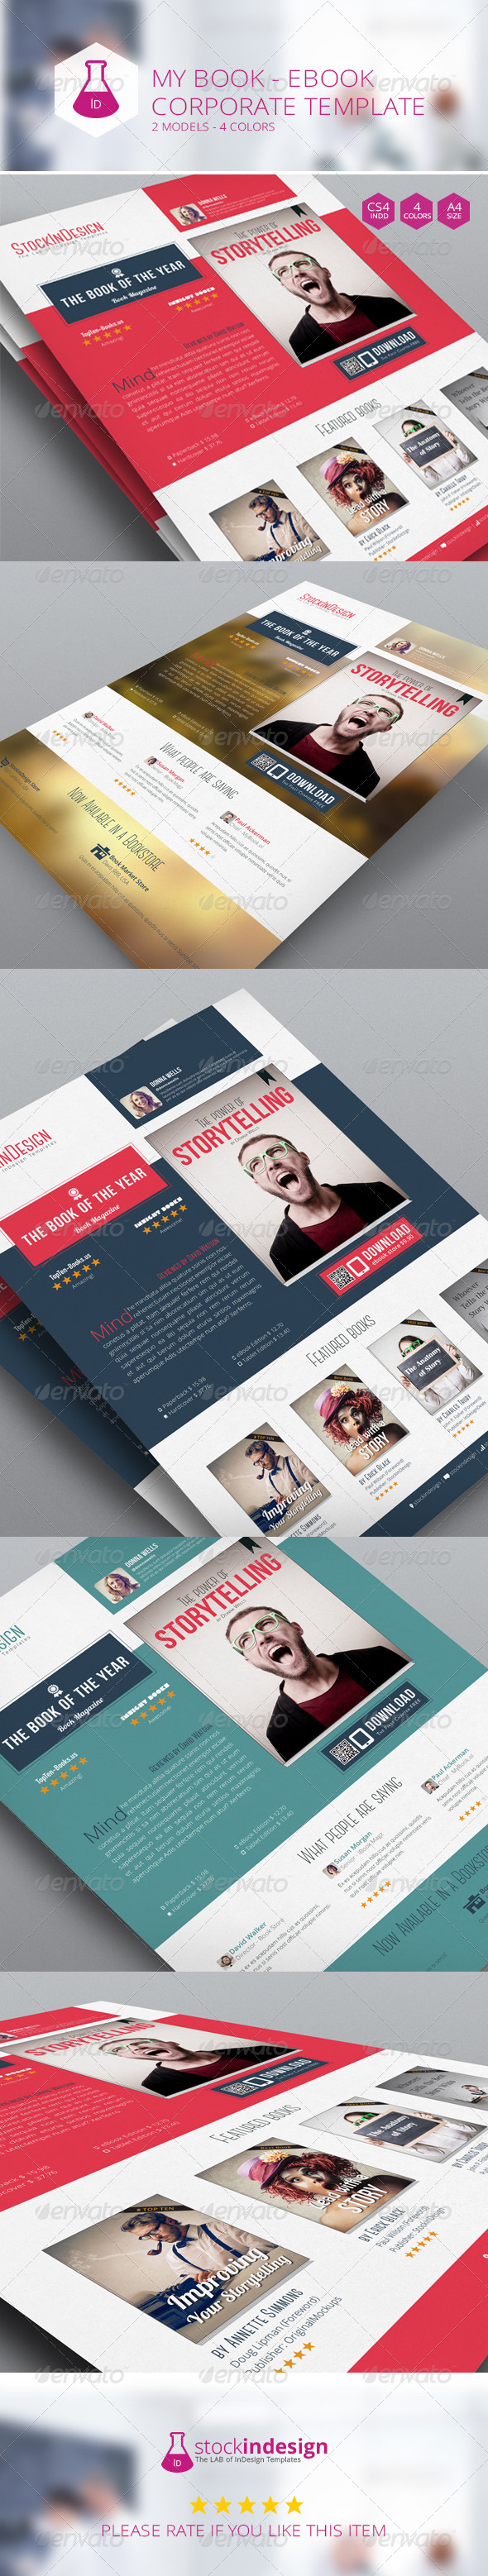 My Book Ebook Promotion - Flat Design - Corporate Flyers